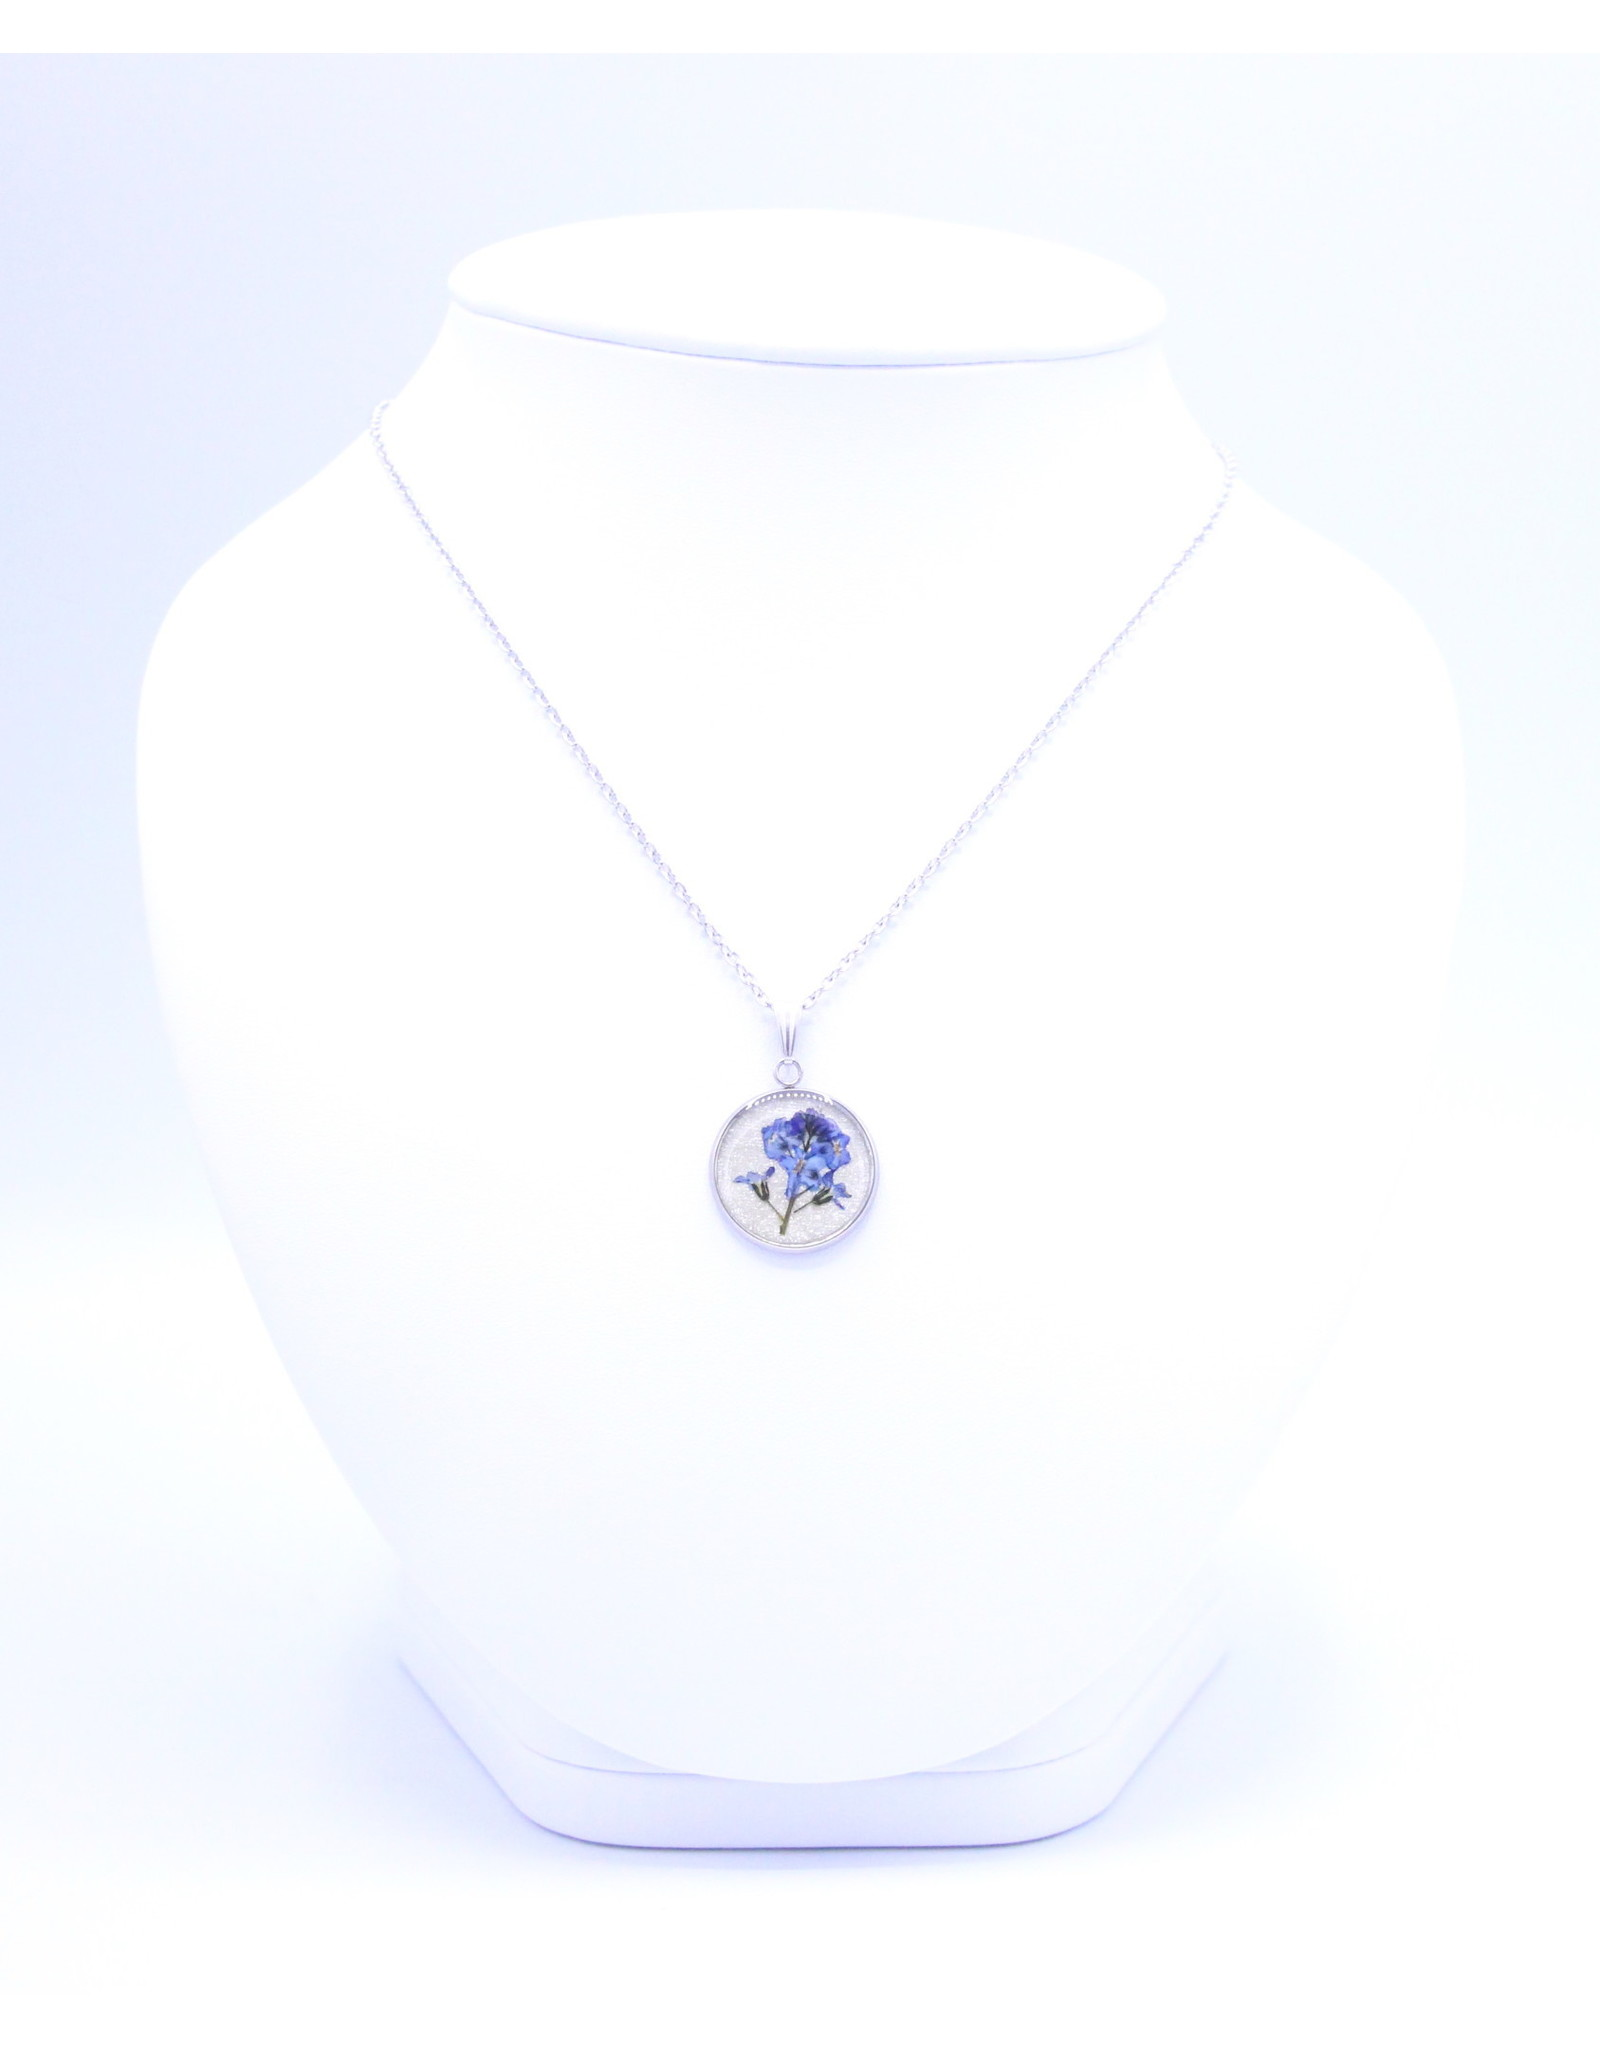 20mm Forget Me Not Necklace - N20FMN3